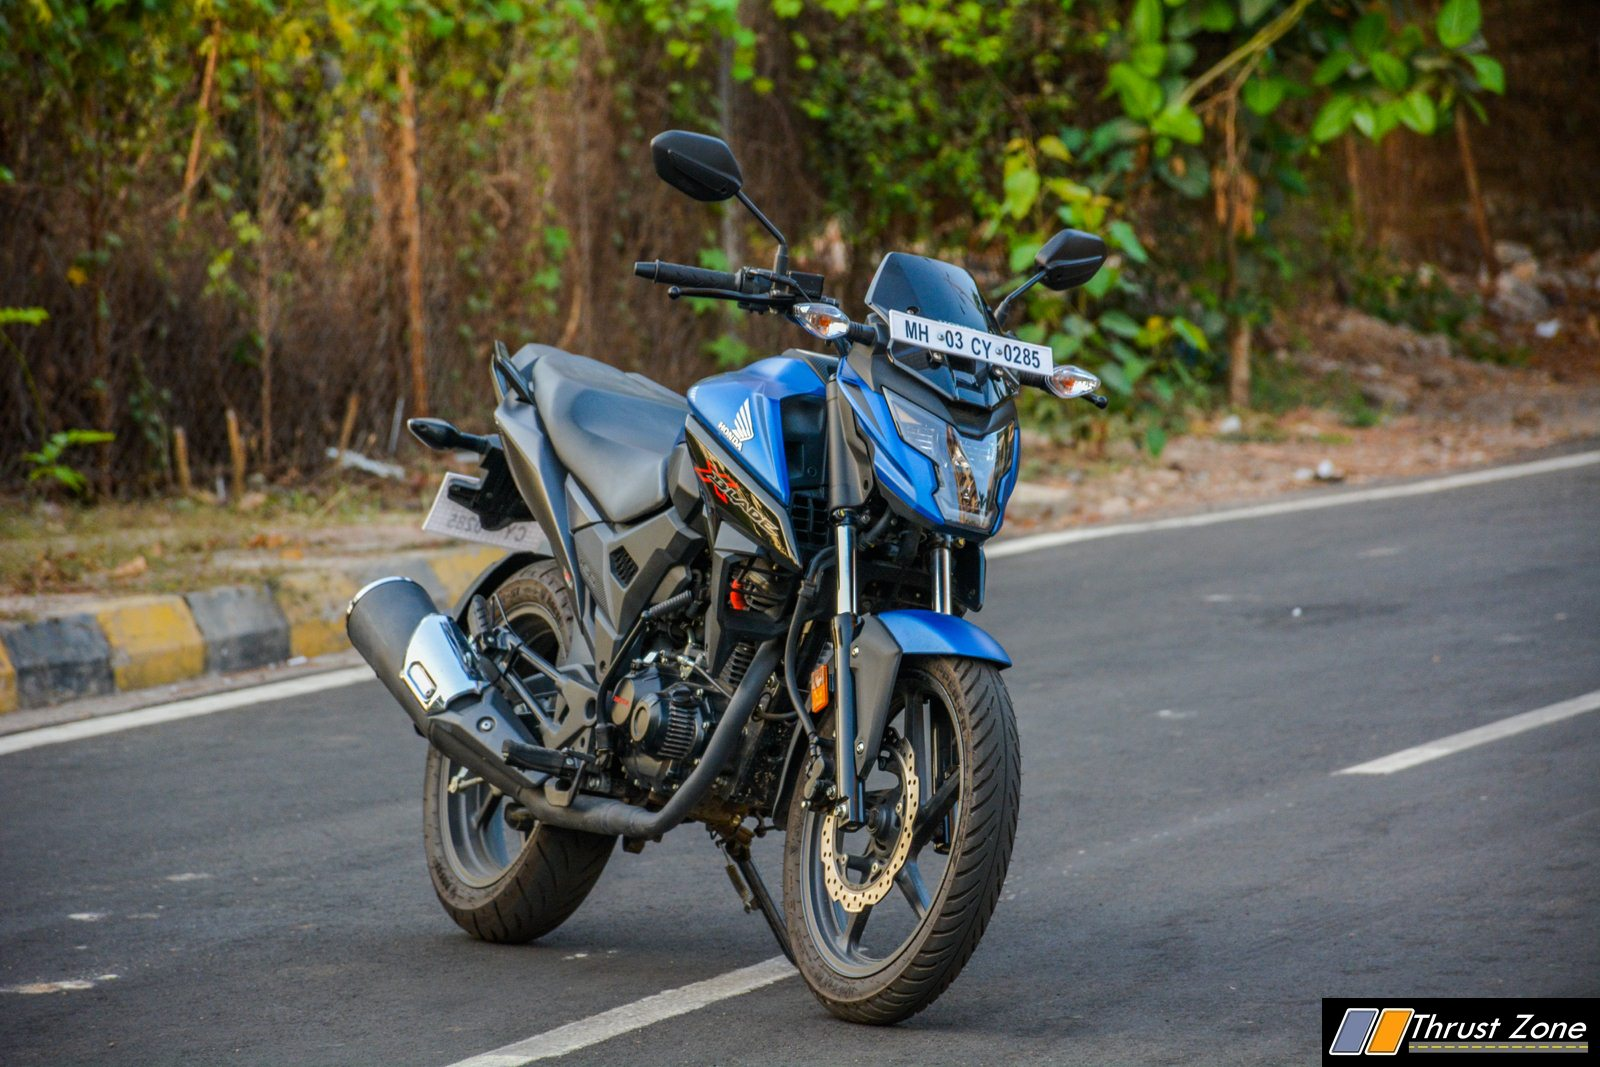 https://www.thrustzone.com/wp-content/uploads/2018/05/2019-Honda-XBlade-160-Review-6.jpg